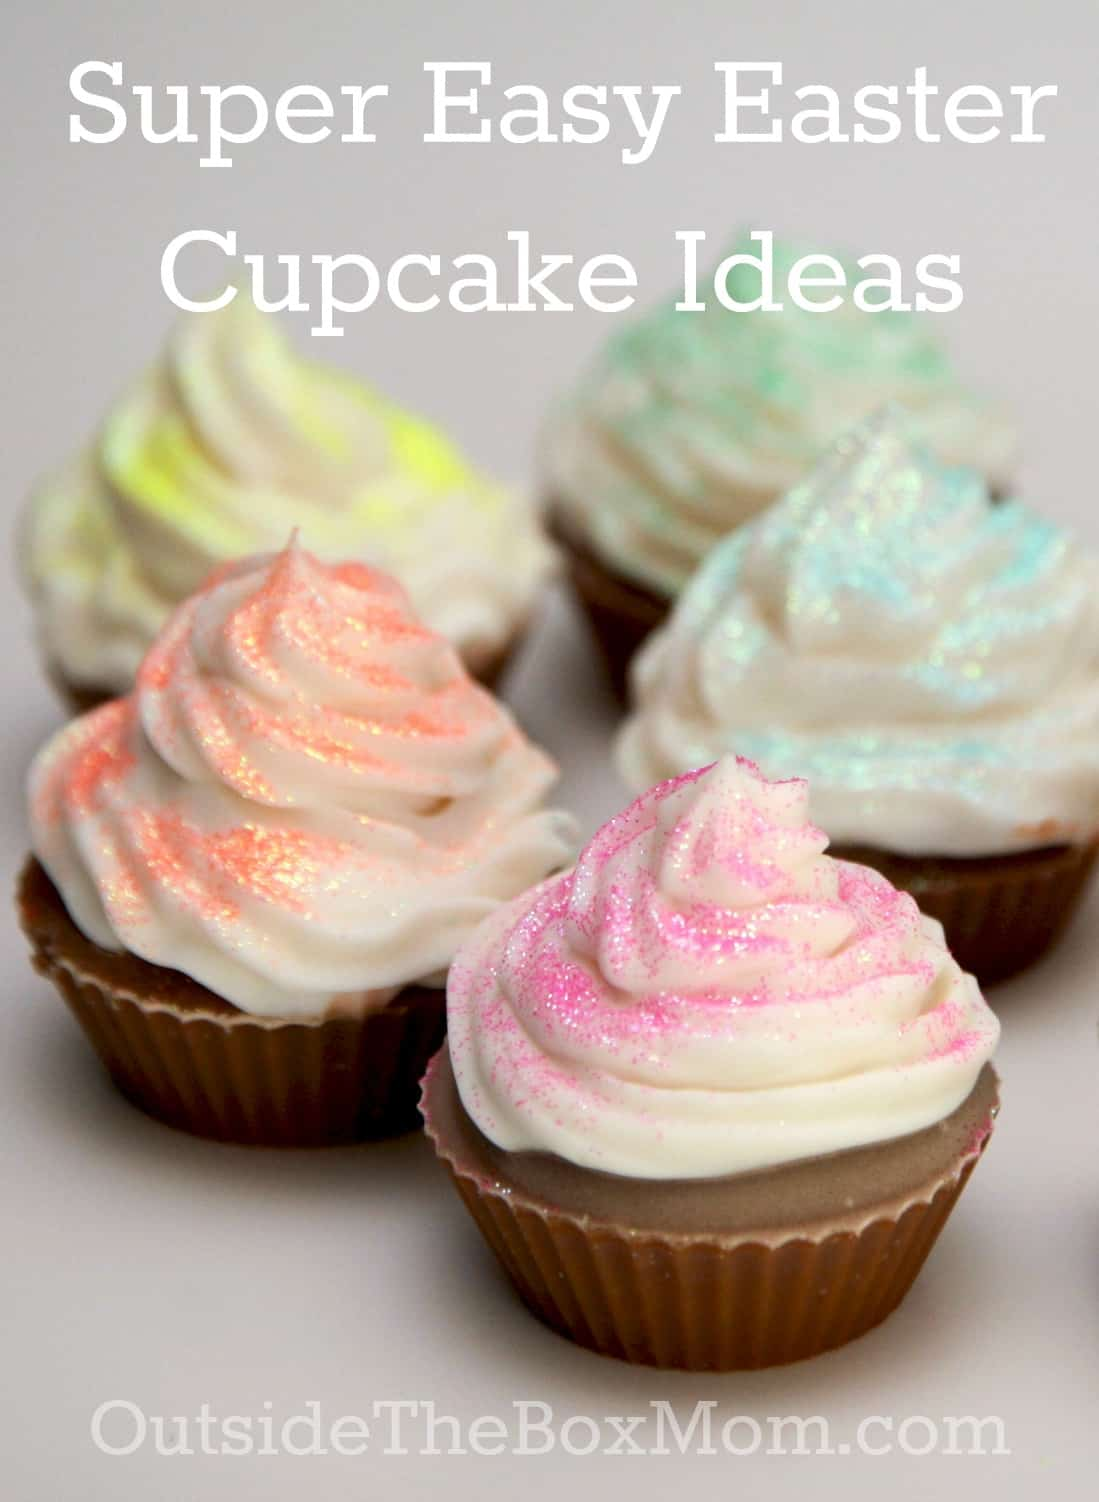 Cupcake Recipes Made With Box Cake Mix